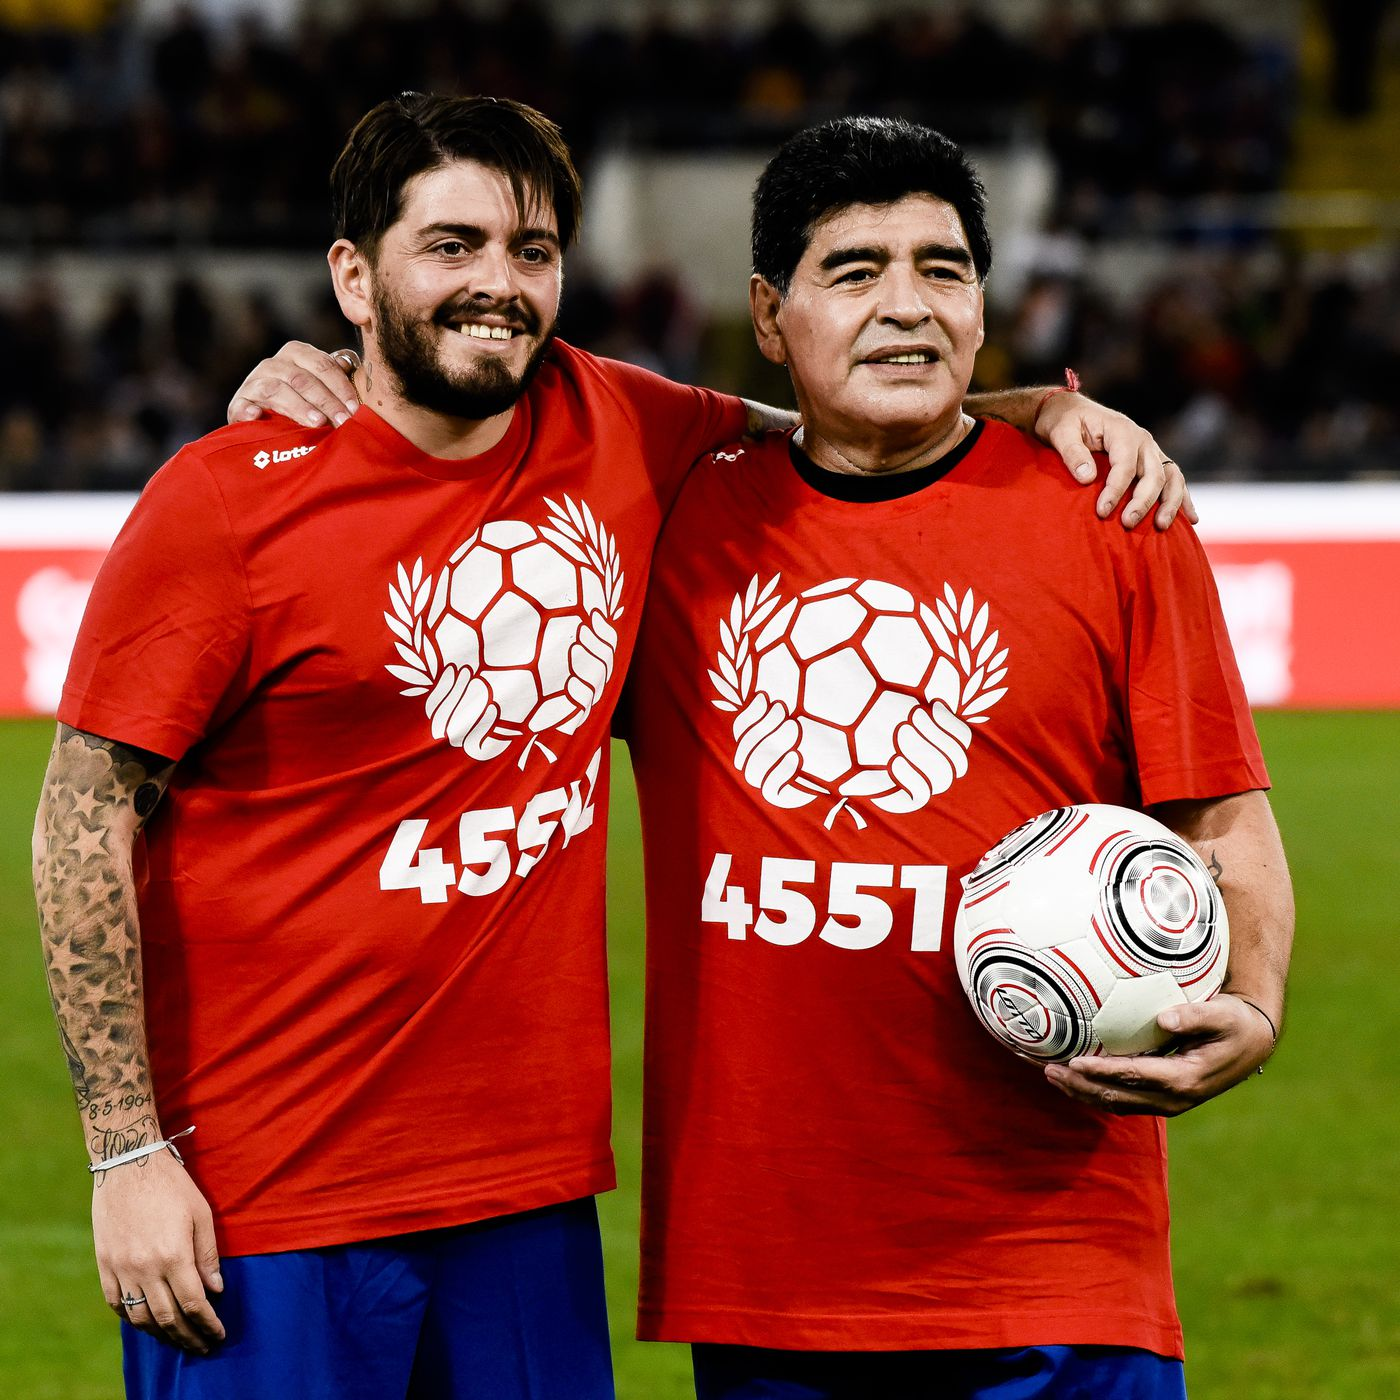 Diego Maradona Biography,  Age,  education,  parents,  father,  mother,   wiki,  date of birth,  family,  wife, football career, daughter,  son,  marriage pics,  awards, net worth, young photo